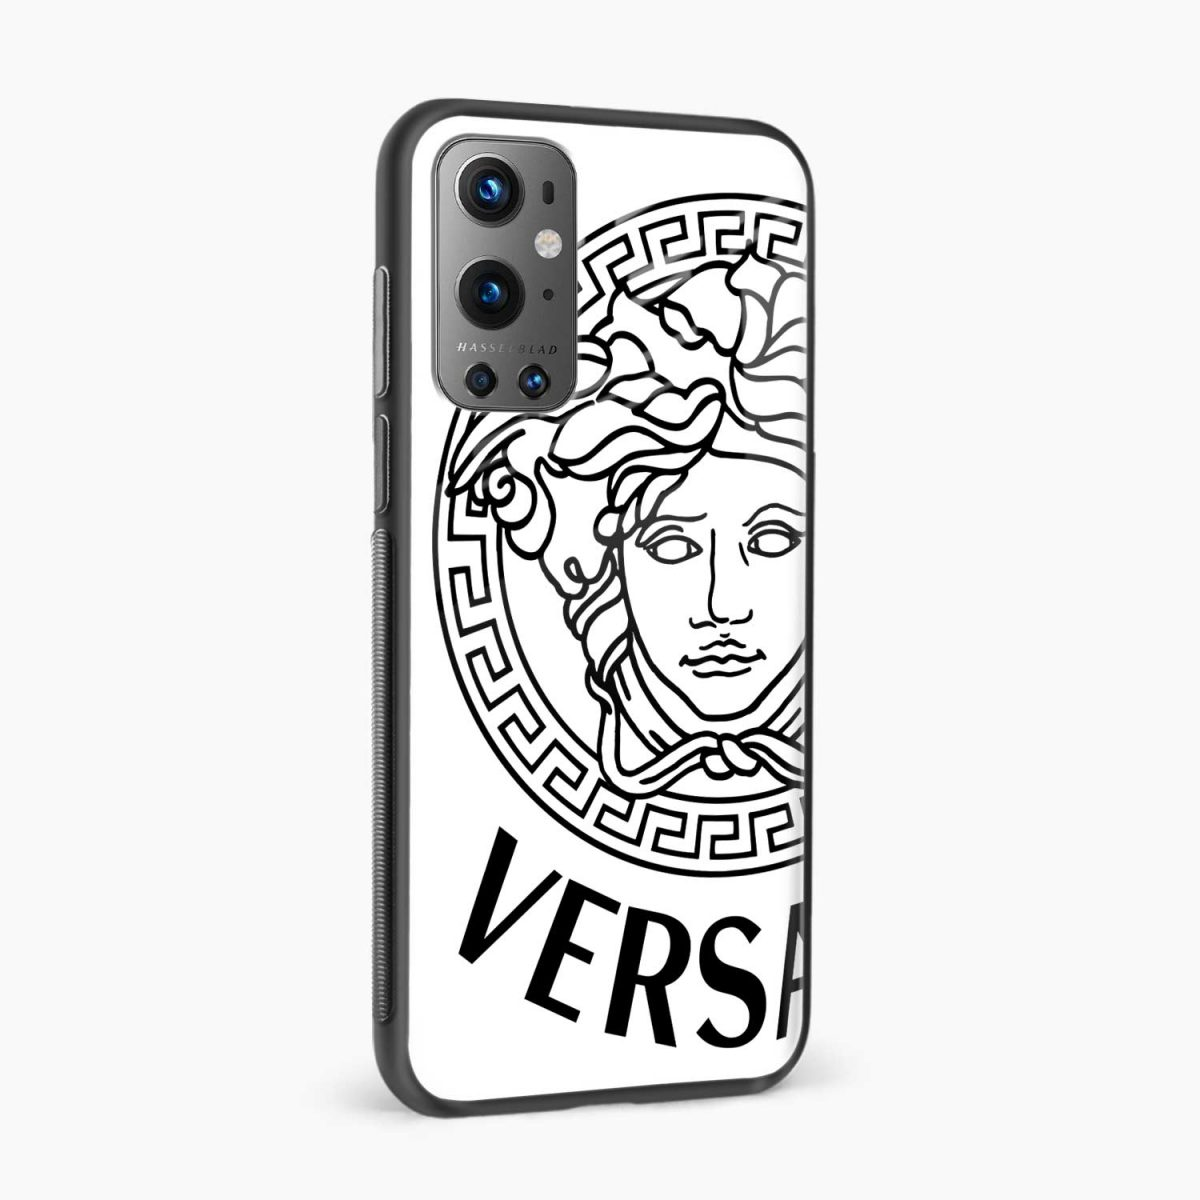 versace black white side view oneplus 9 pro back cover